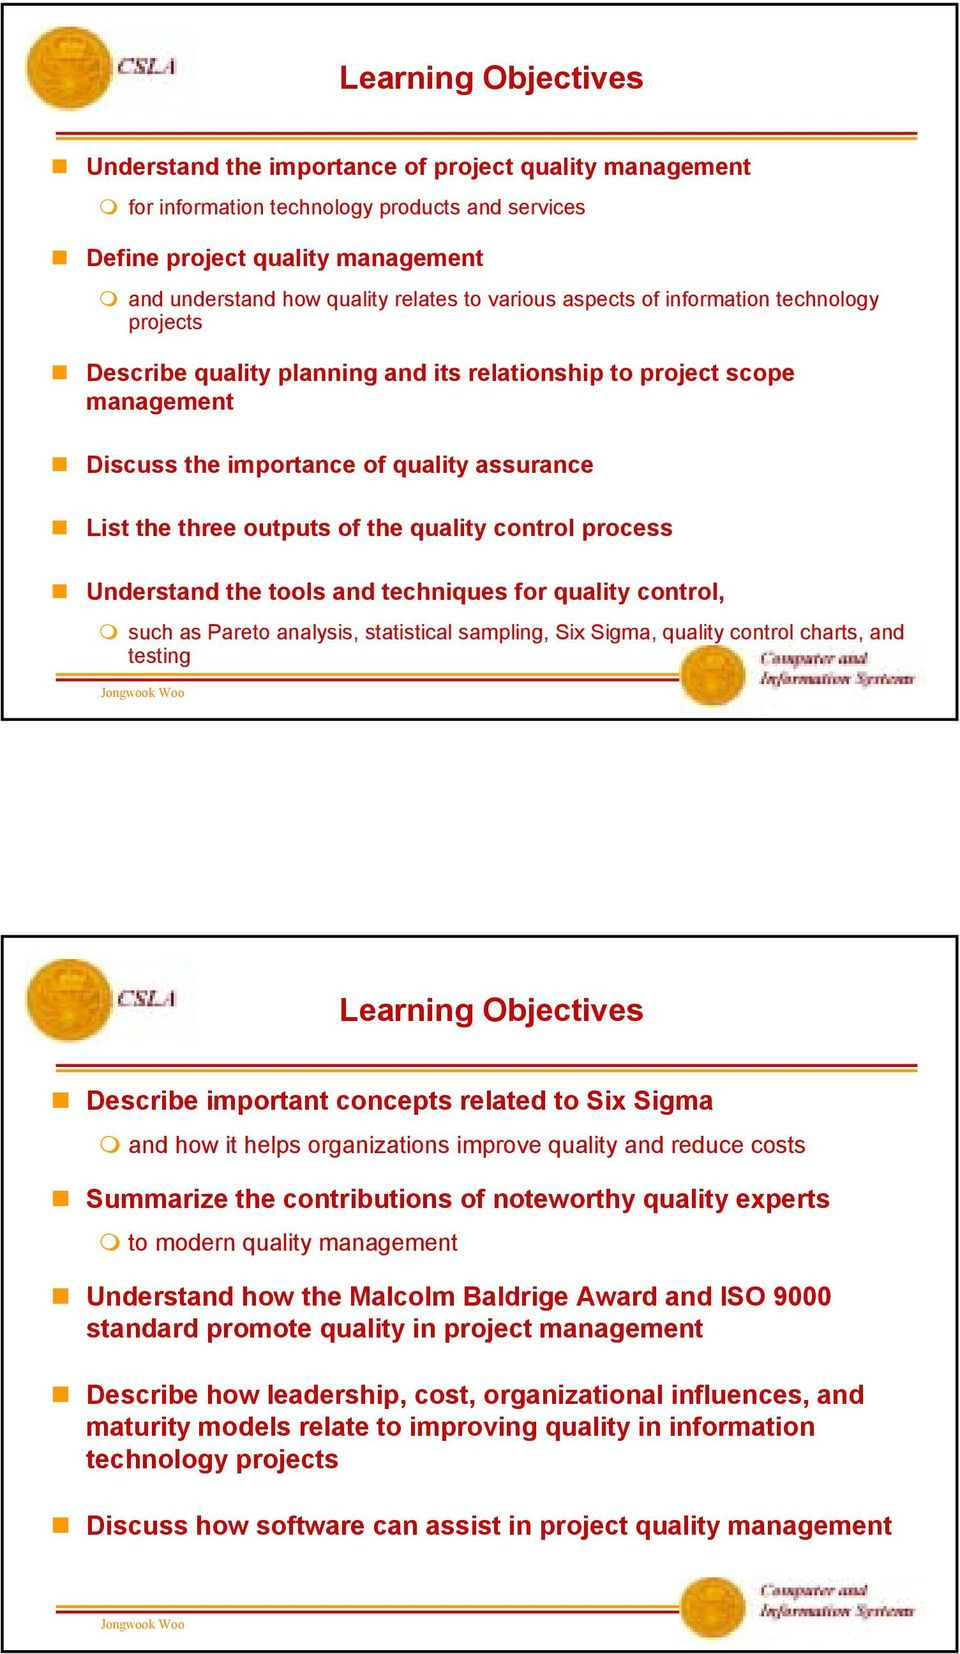 quality control process Understand the tools and techniques for quality control, such as Pareto analysis, statistical sampling, Six Sigma, quality control charts, and testing Learning Objectives